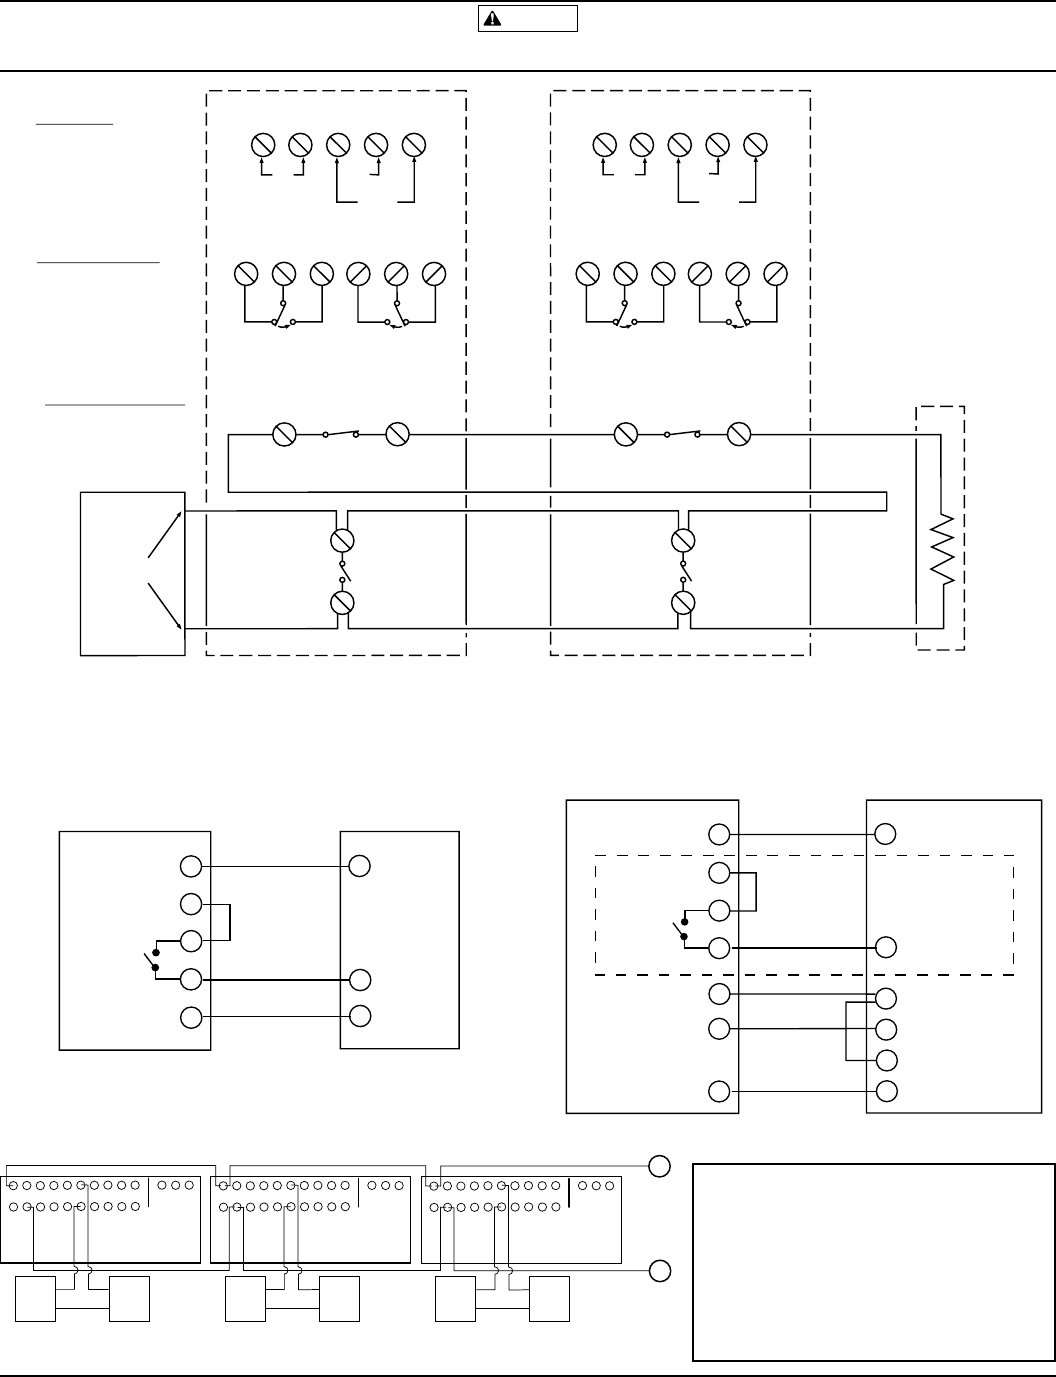 duct detector wiring diagram duct image wiring diagram system sensor duct detector wiring diagram system wiring on duct detector wiring diagram